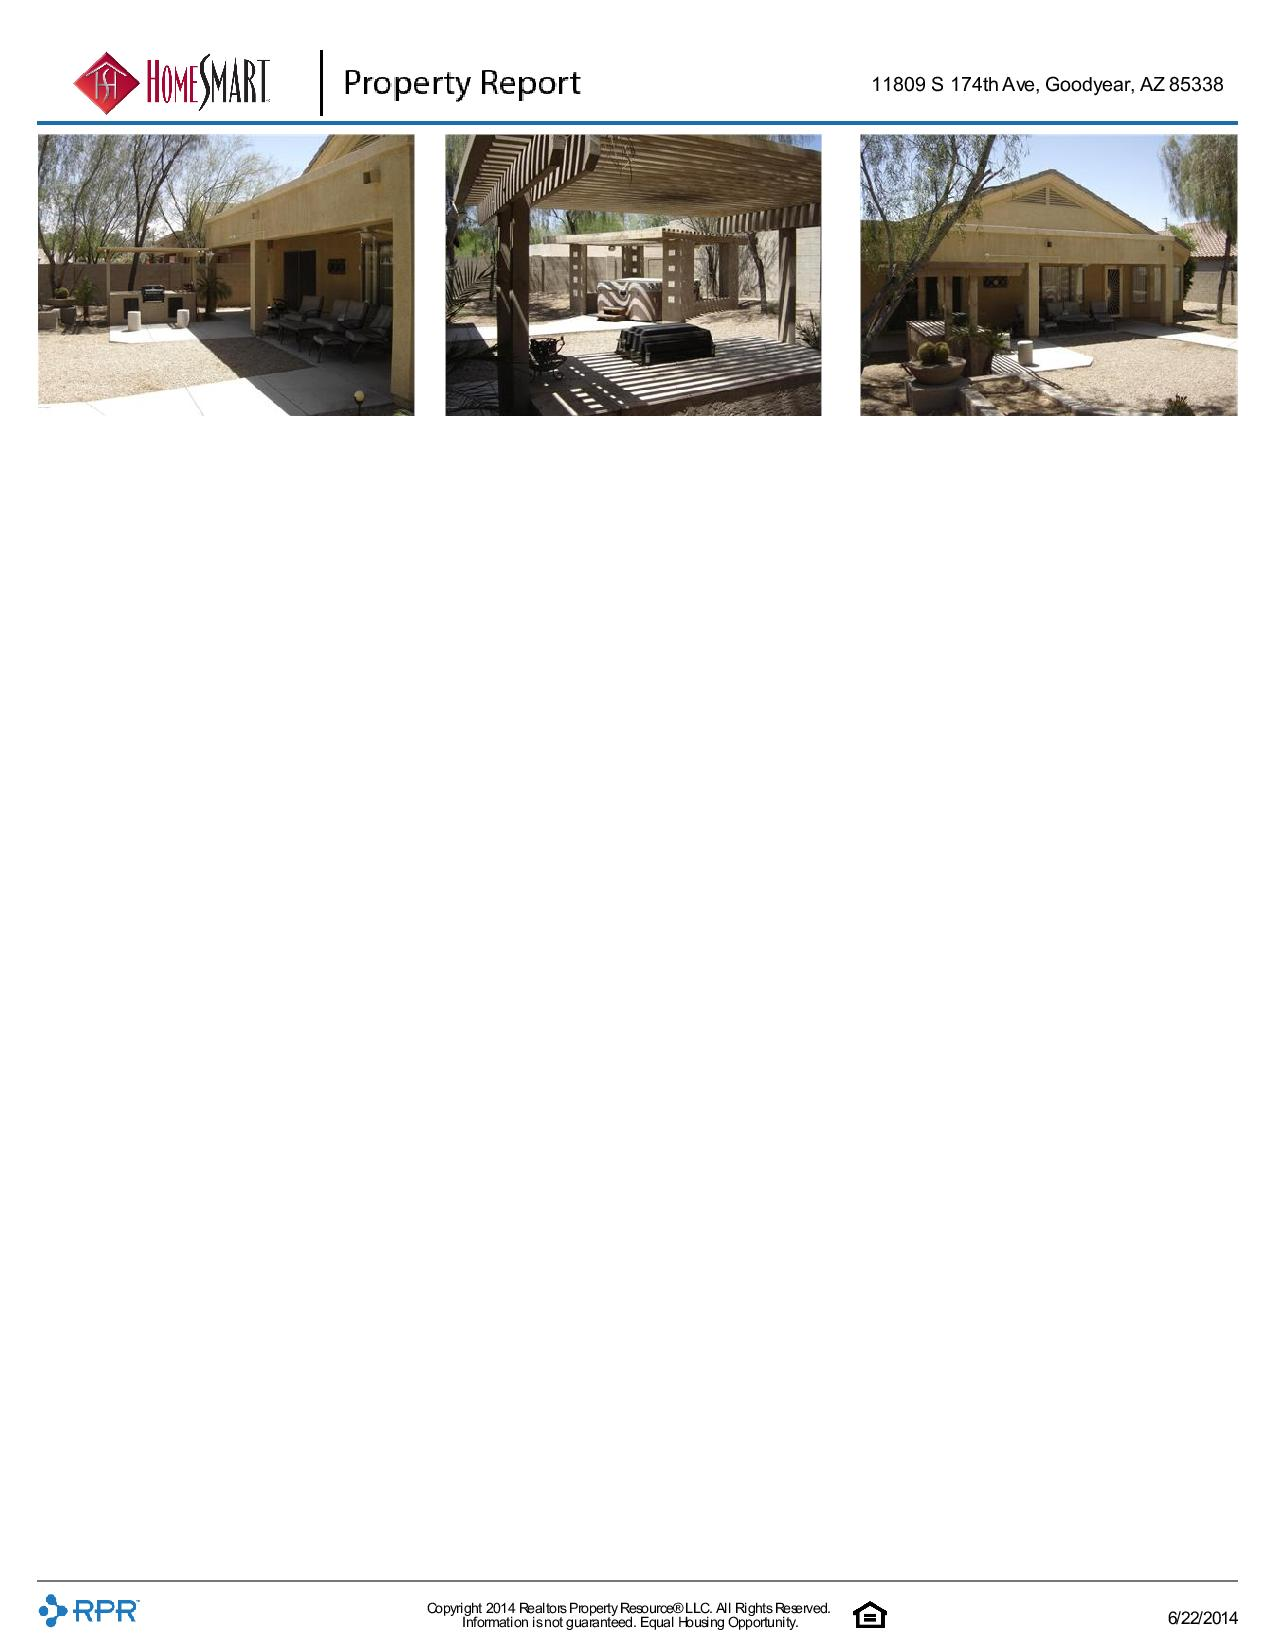 11809-S-174th-Ave-Goodyear-AZ-85338-page-006